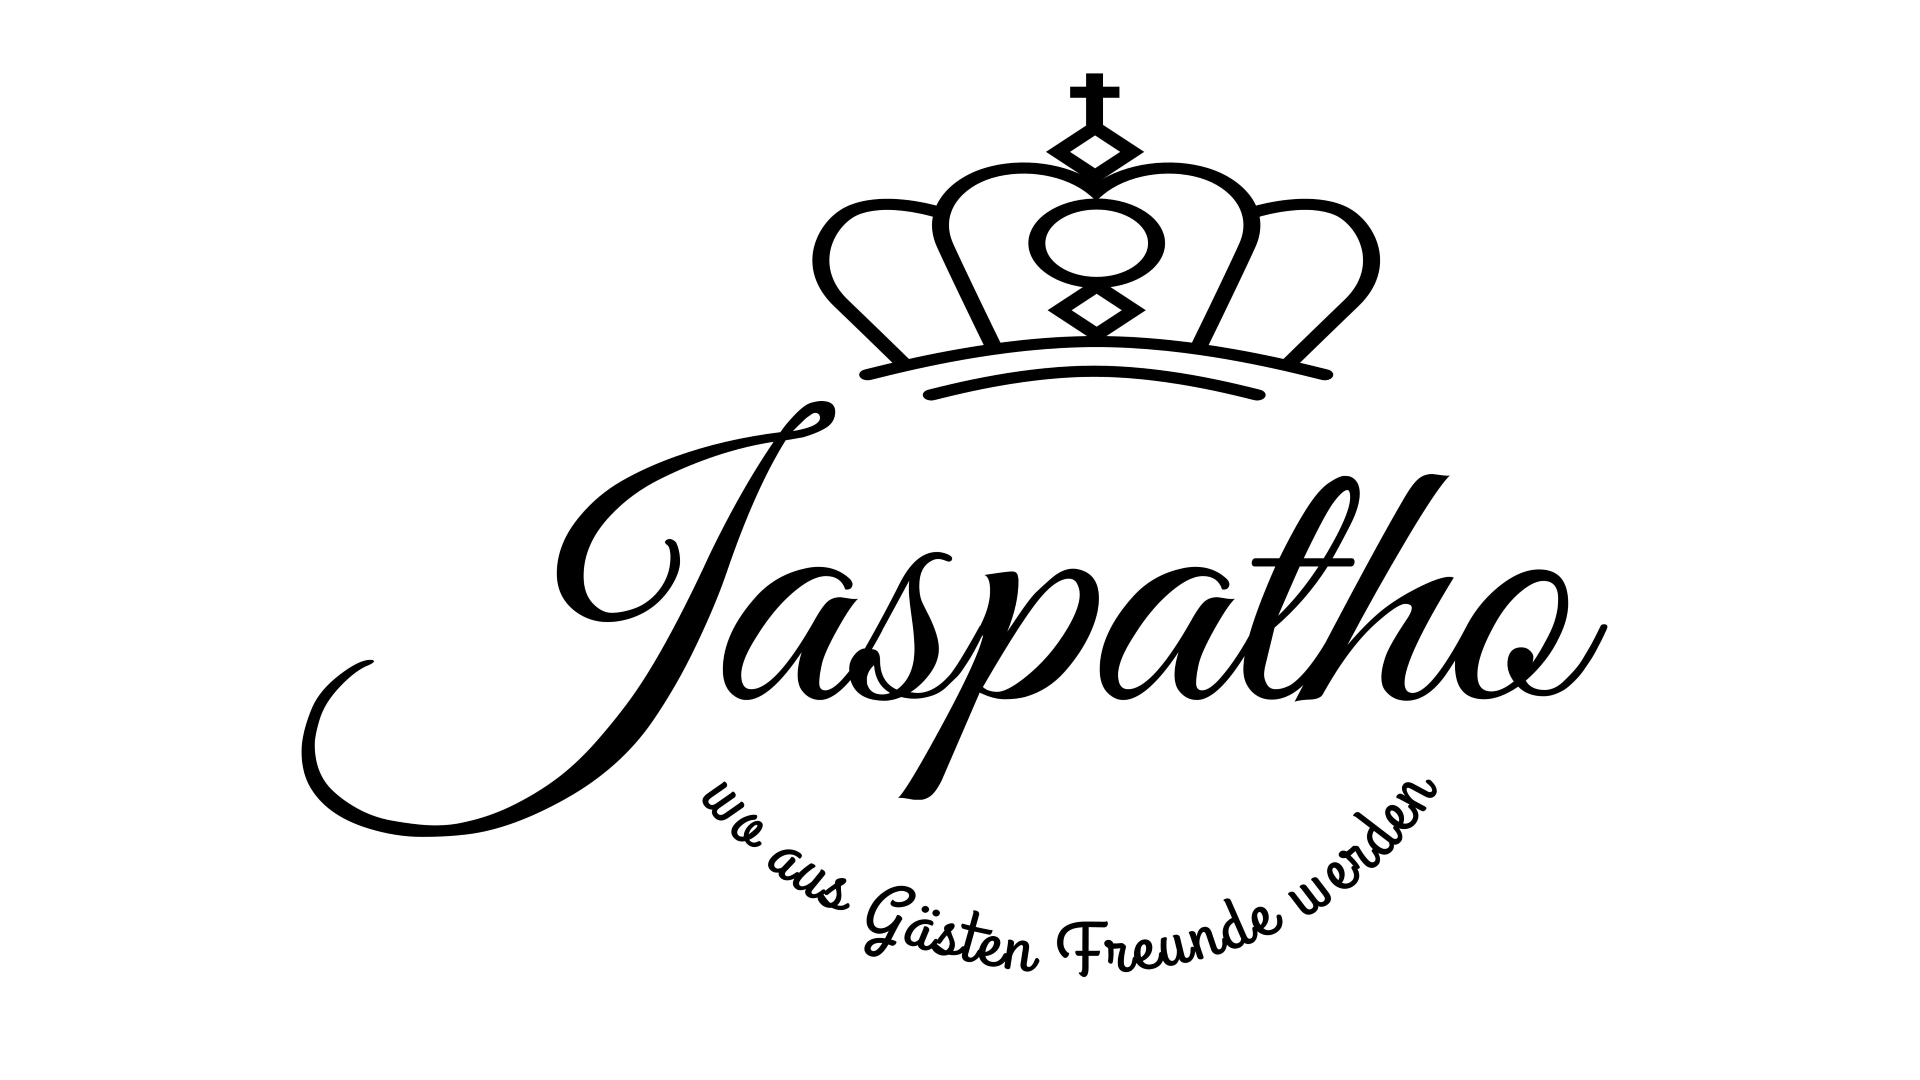 18.05.2020 - Jaspatho - In der Burg